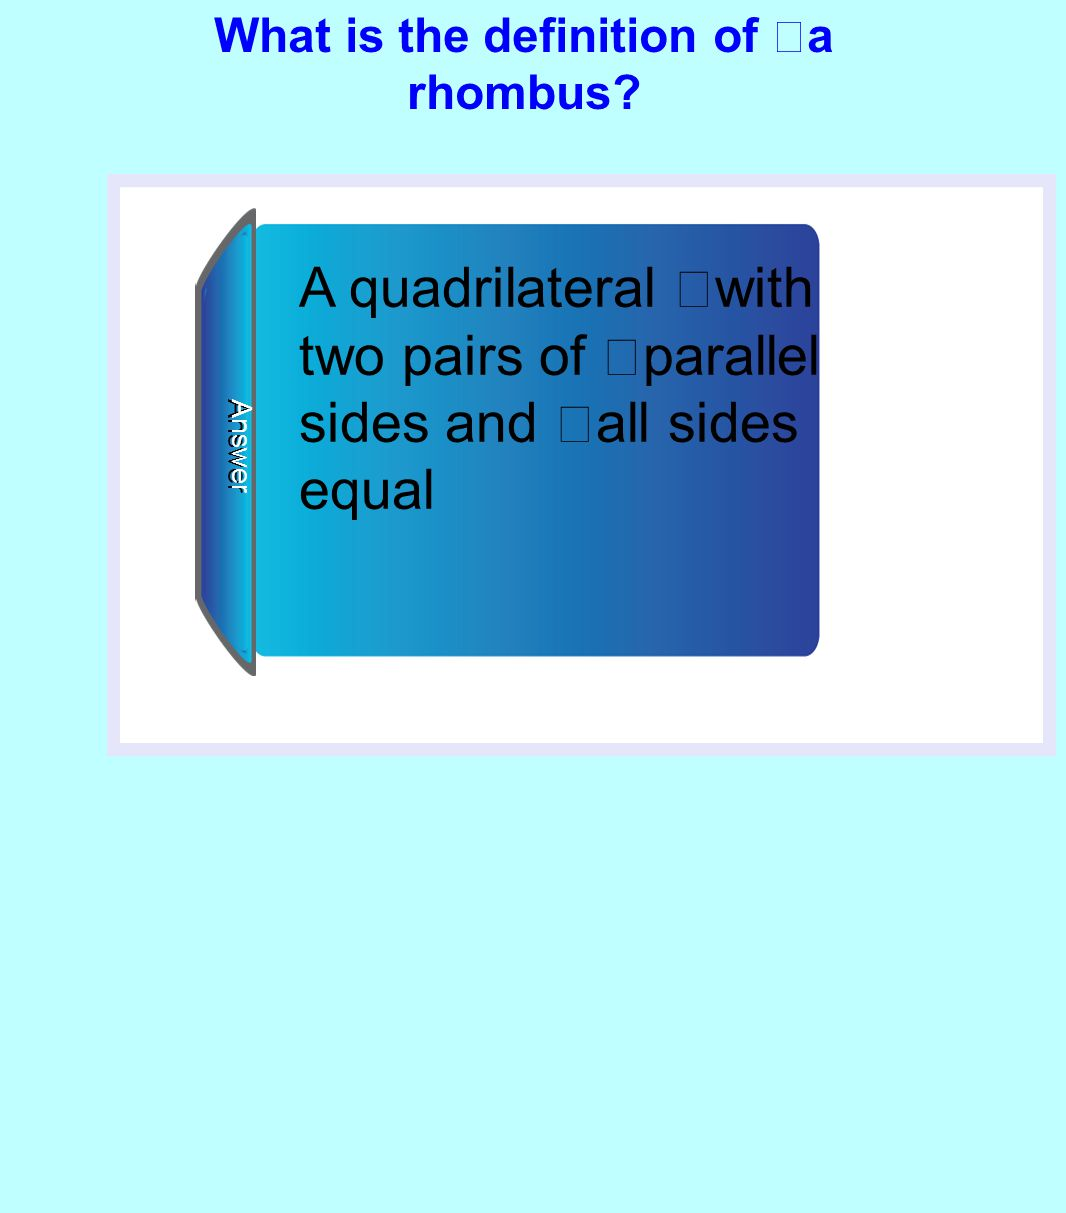 What is the definition of a rhombus